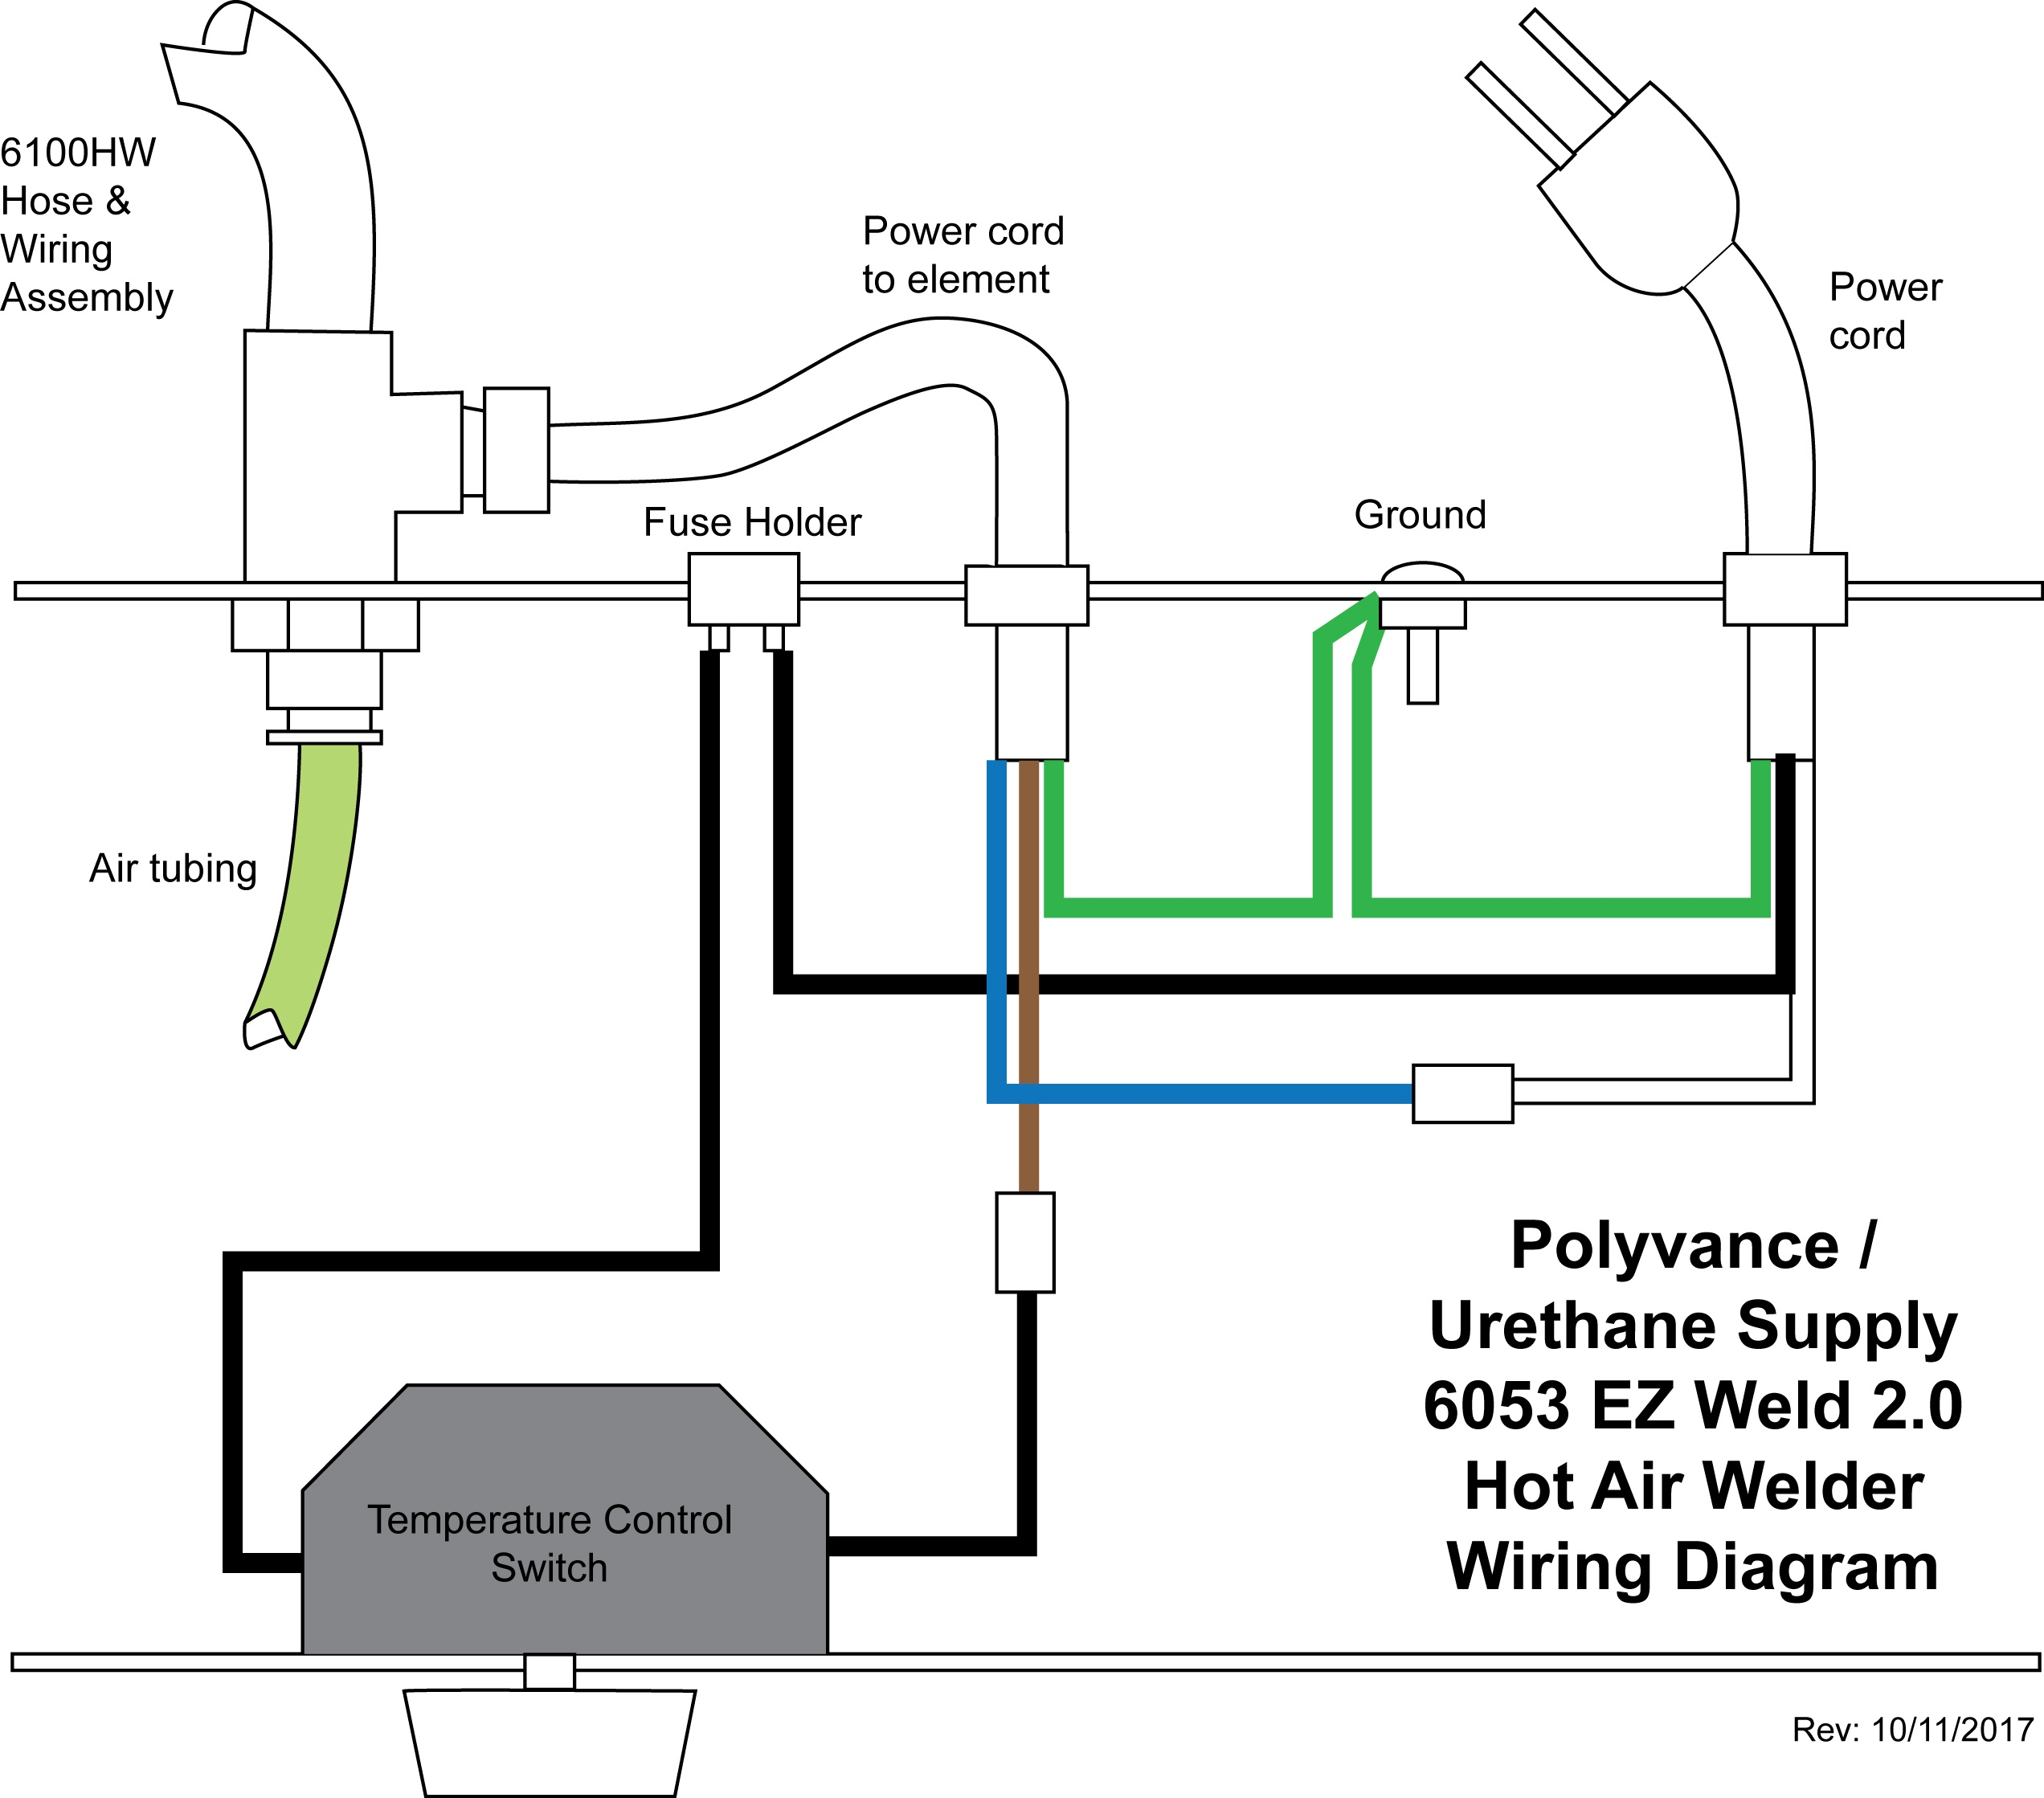 Hose Amp Wiring Assembly